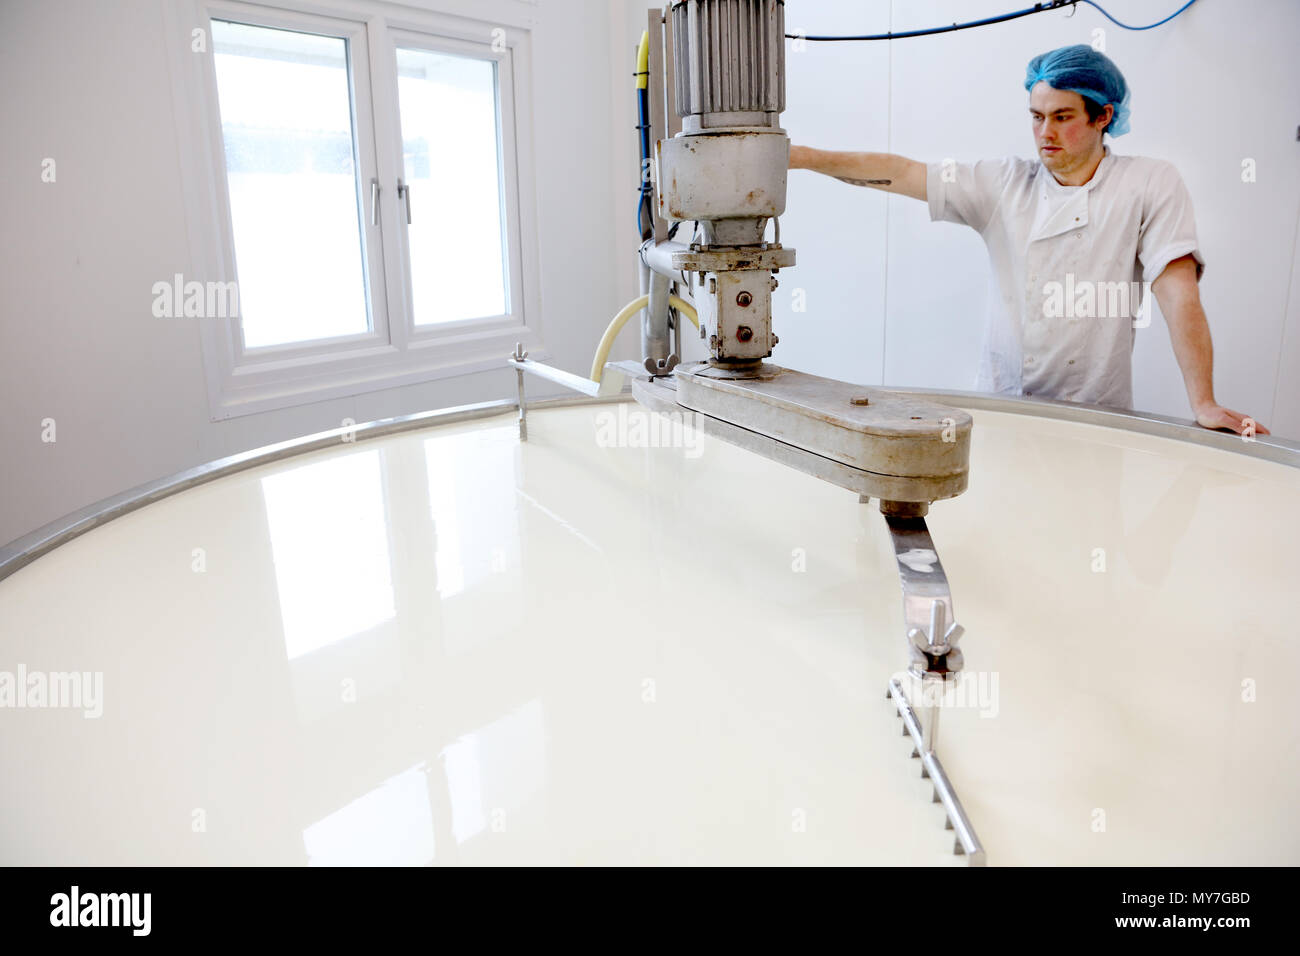 Cheese maker slicing the curds in the vat - Stock Image